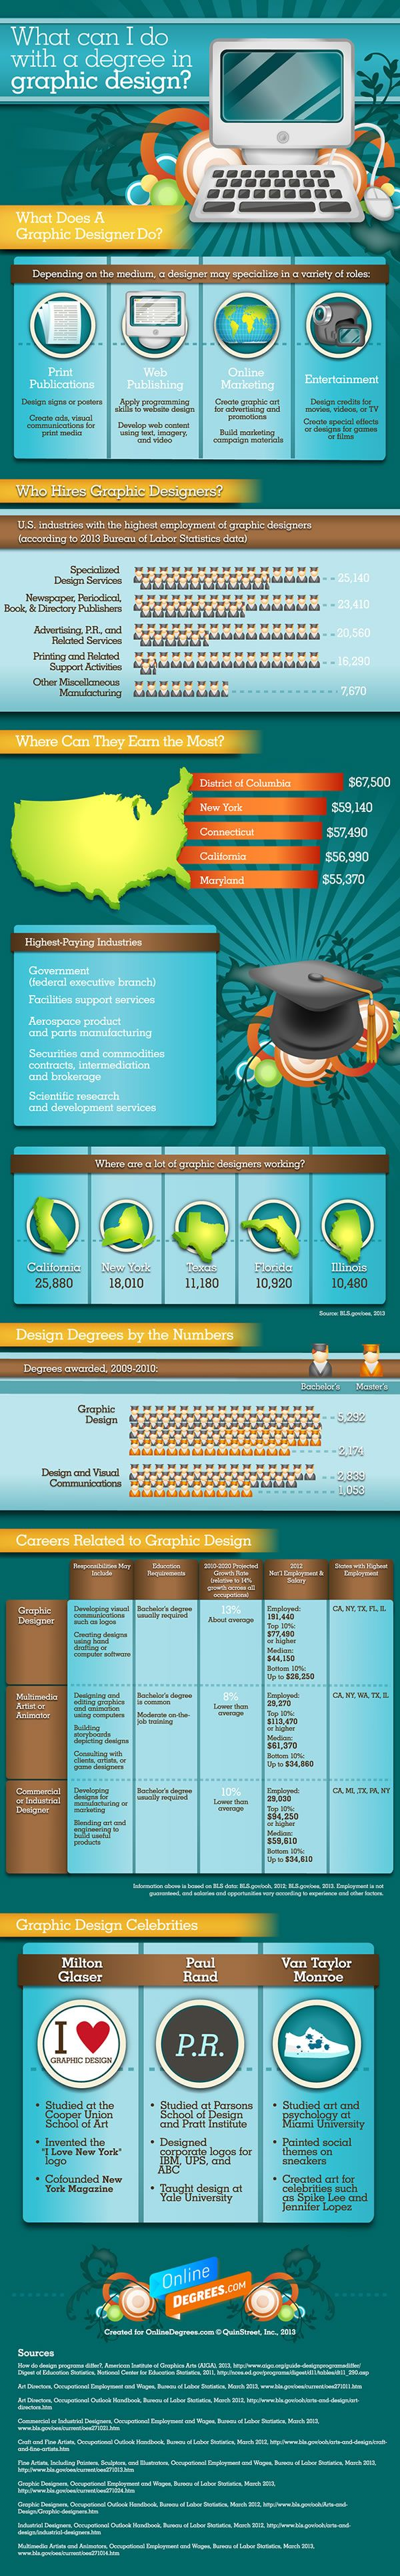 What Can I Do With A Degree In Graphic Design? Infographic Posted By  Creative Bloq